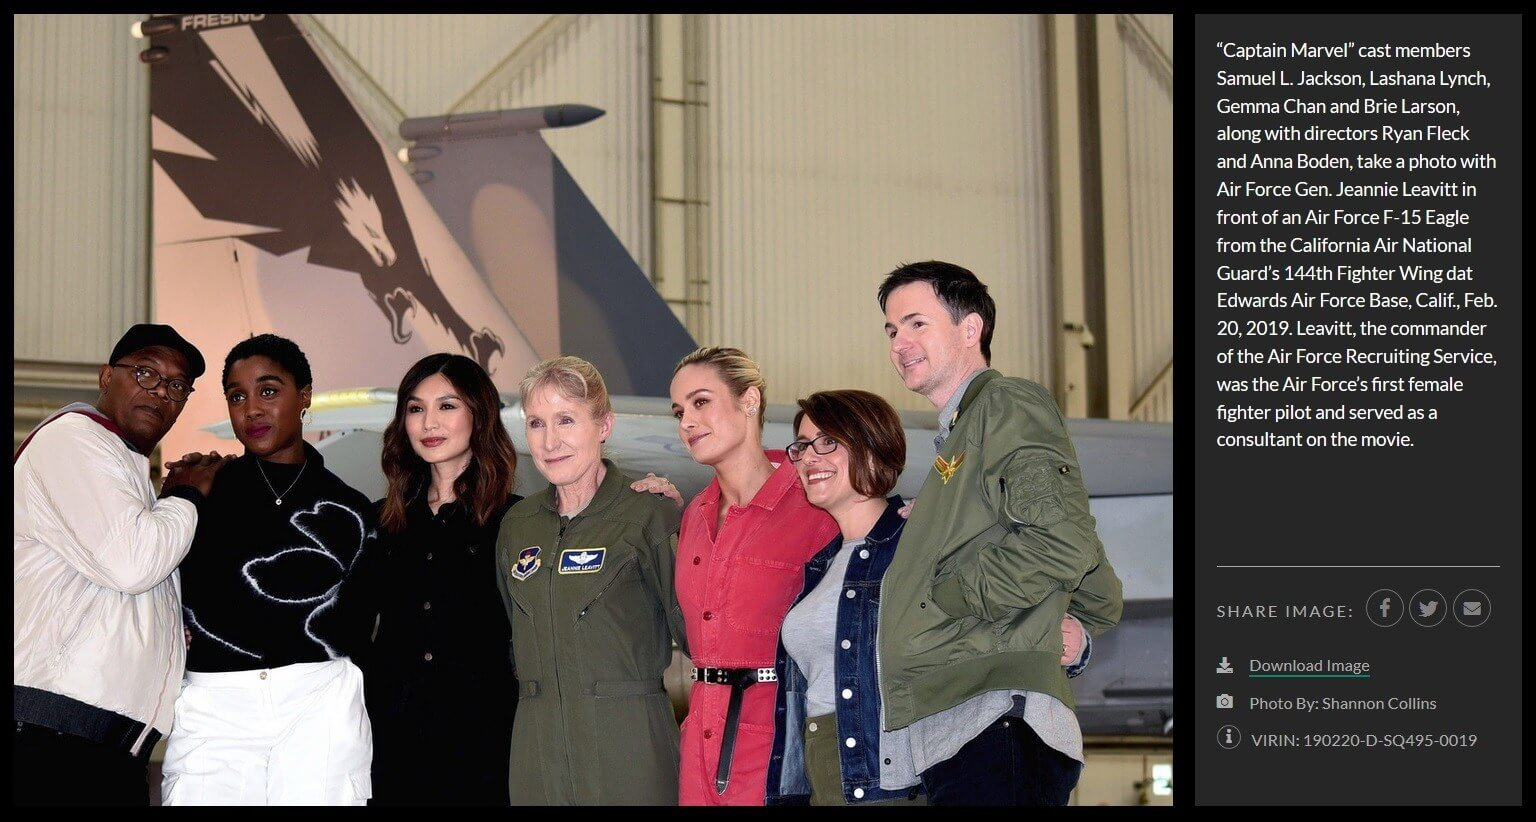 pentagon-captain-marvel-cast